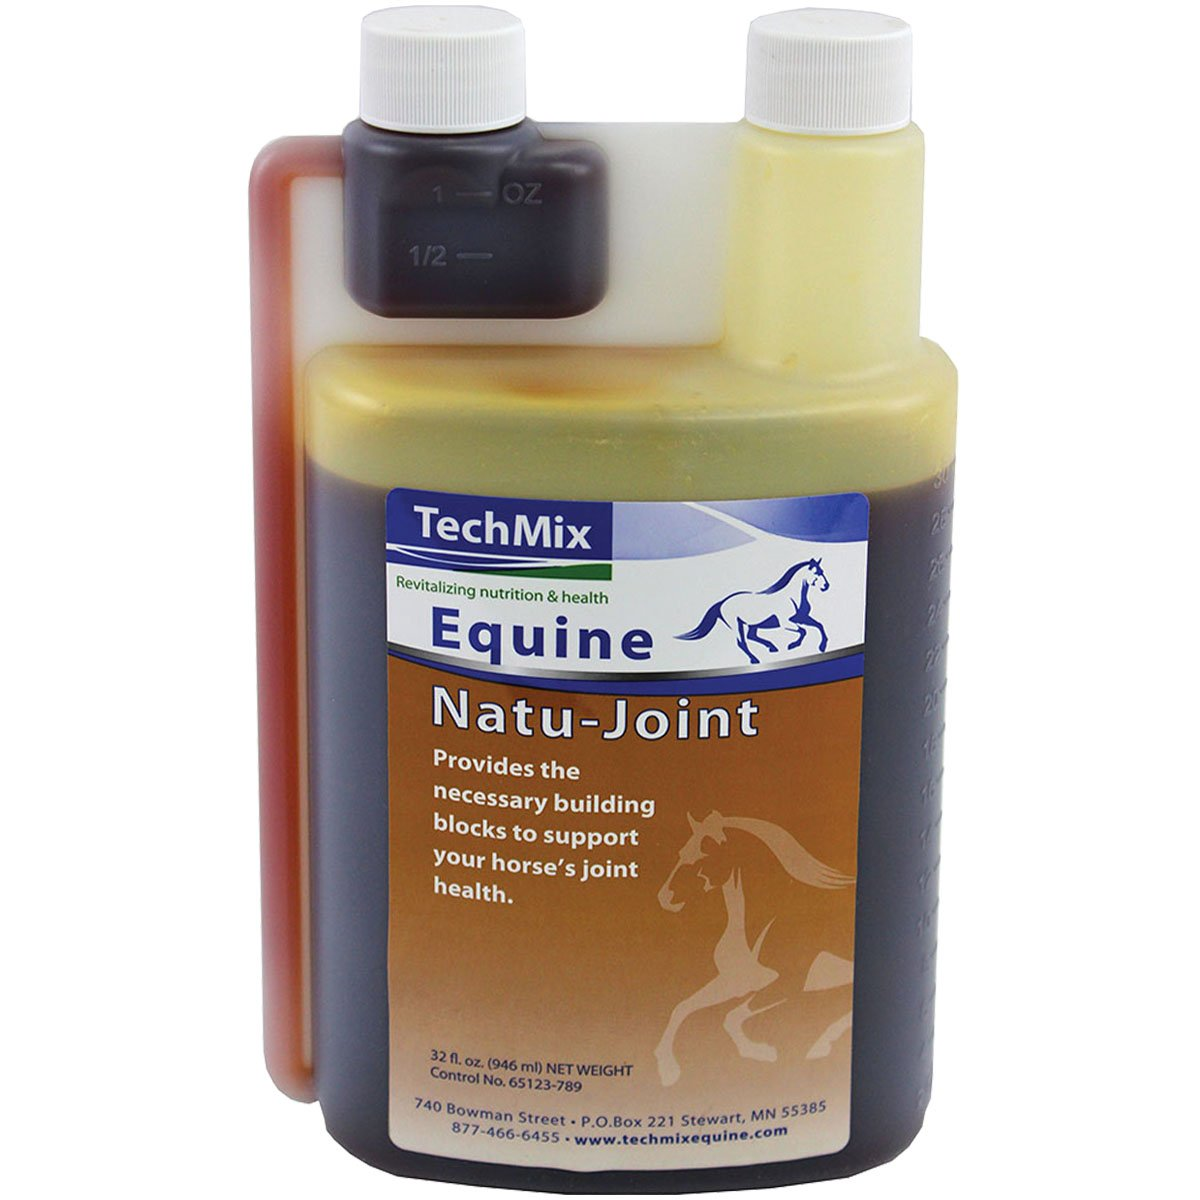 Equine Natu-Joint - 32 ounce